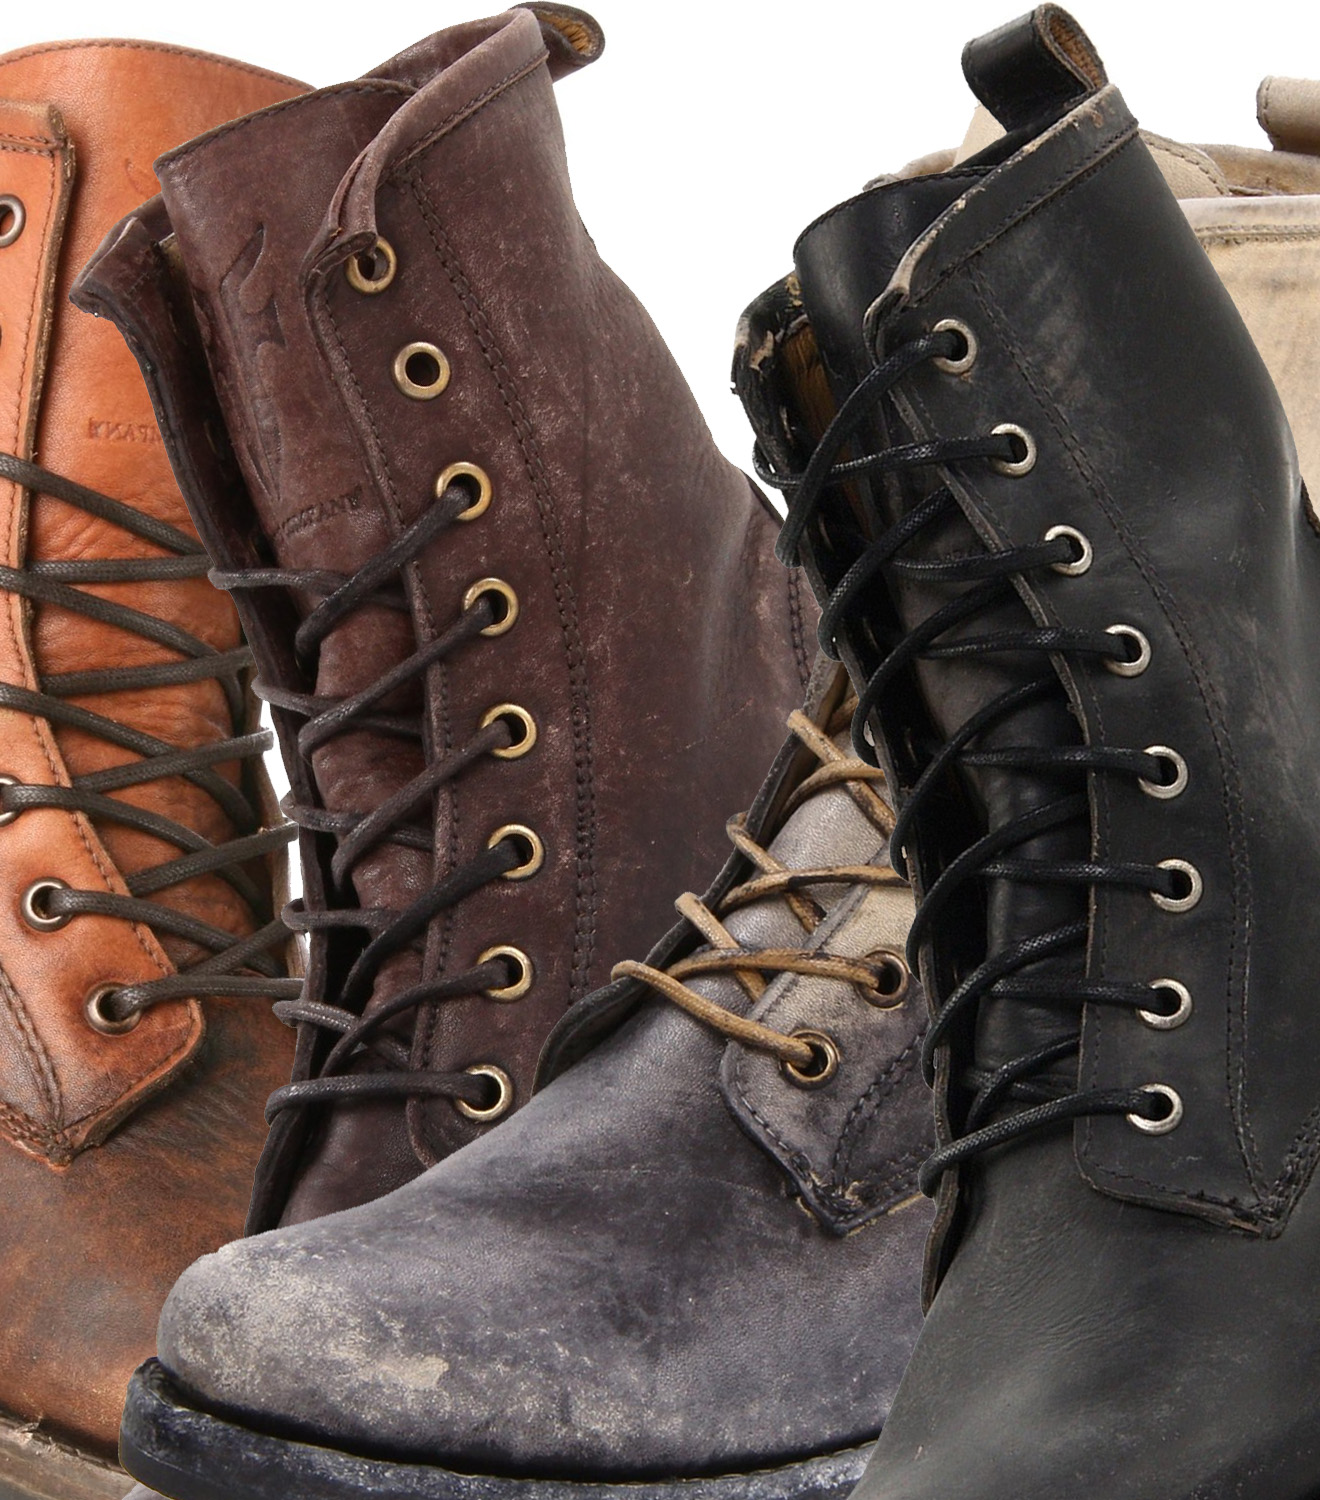 bd07a0057a6 FRYE Veronica Combat Boots the best boots ever? - My Fashion Wants